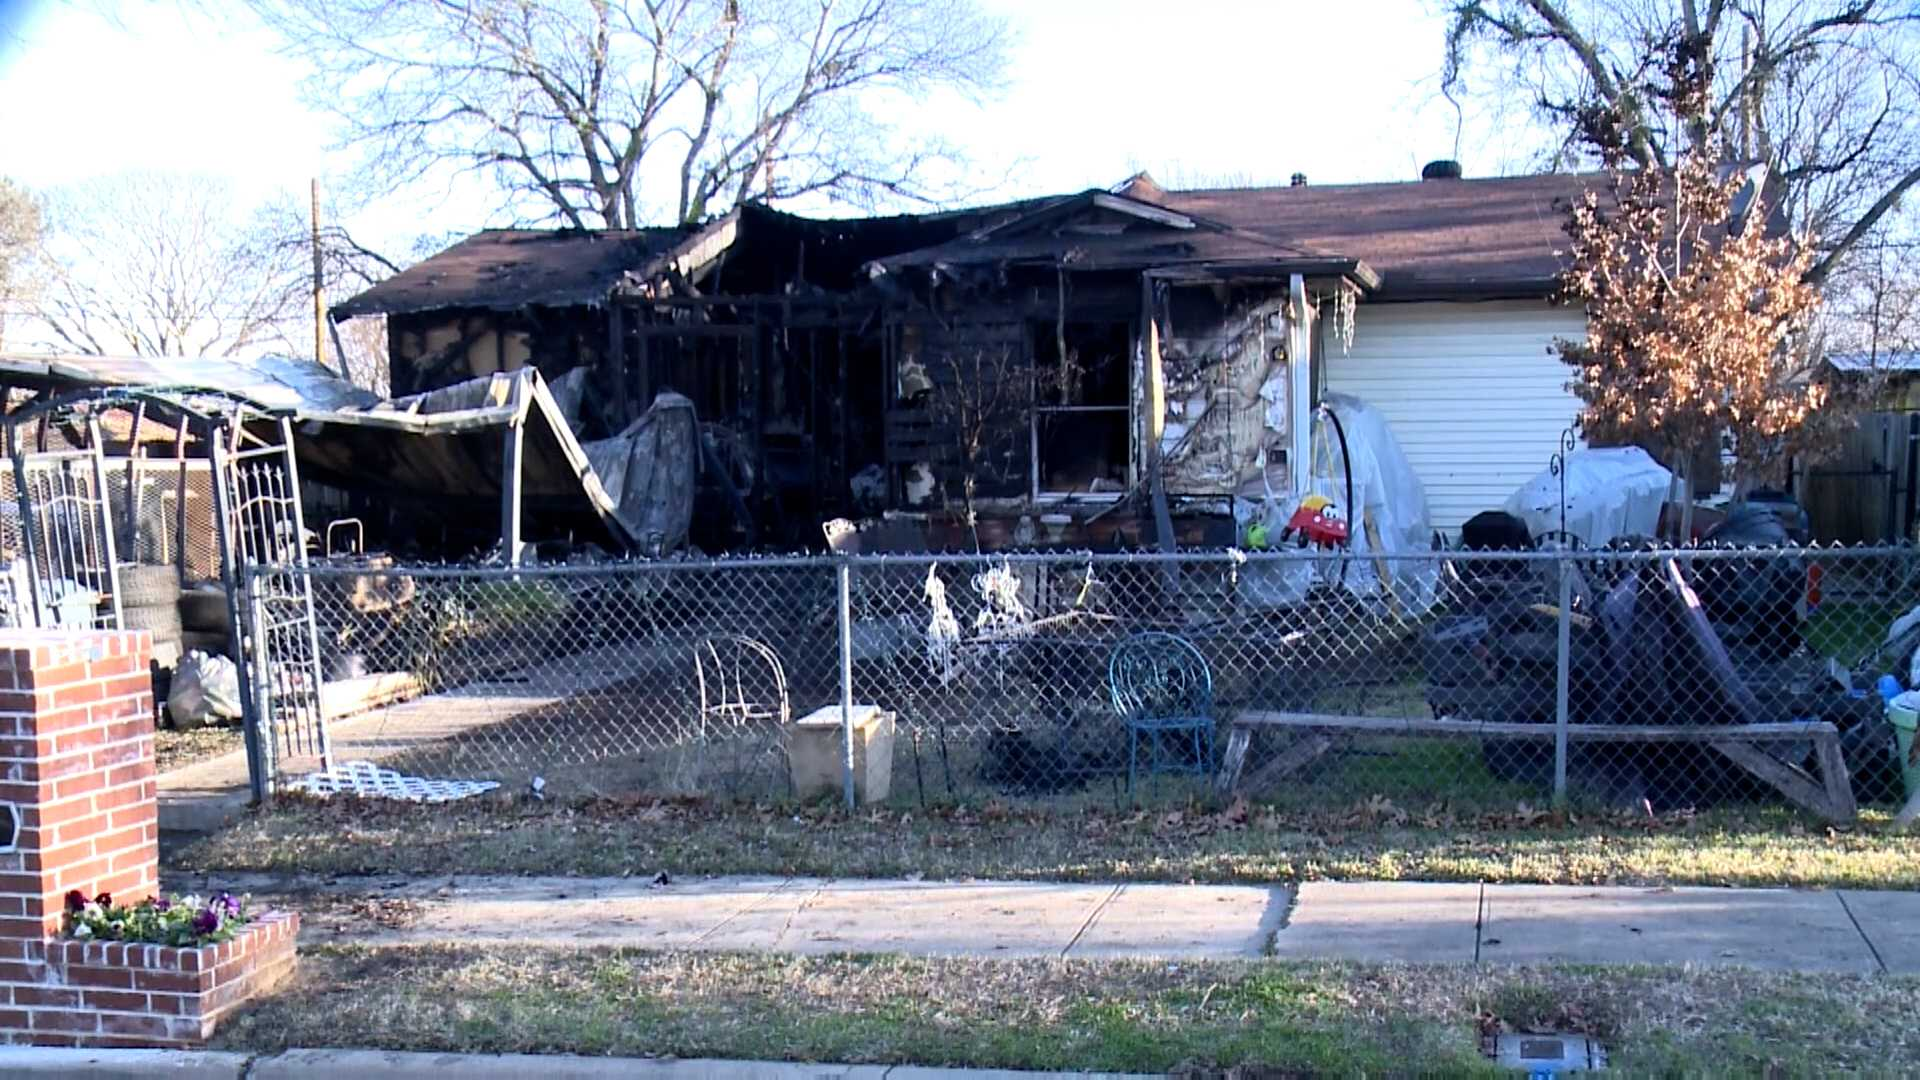 Texas teen saves her family when they lost sense of smell from Covid-19 and didn't realize house was on fire 3